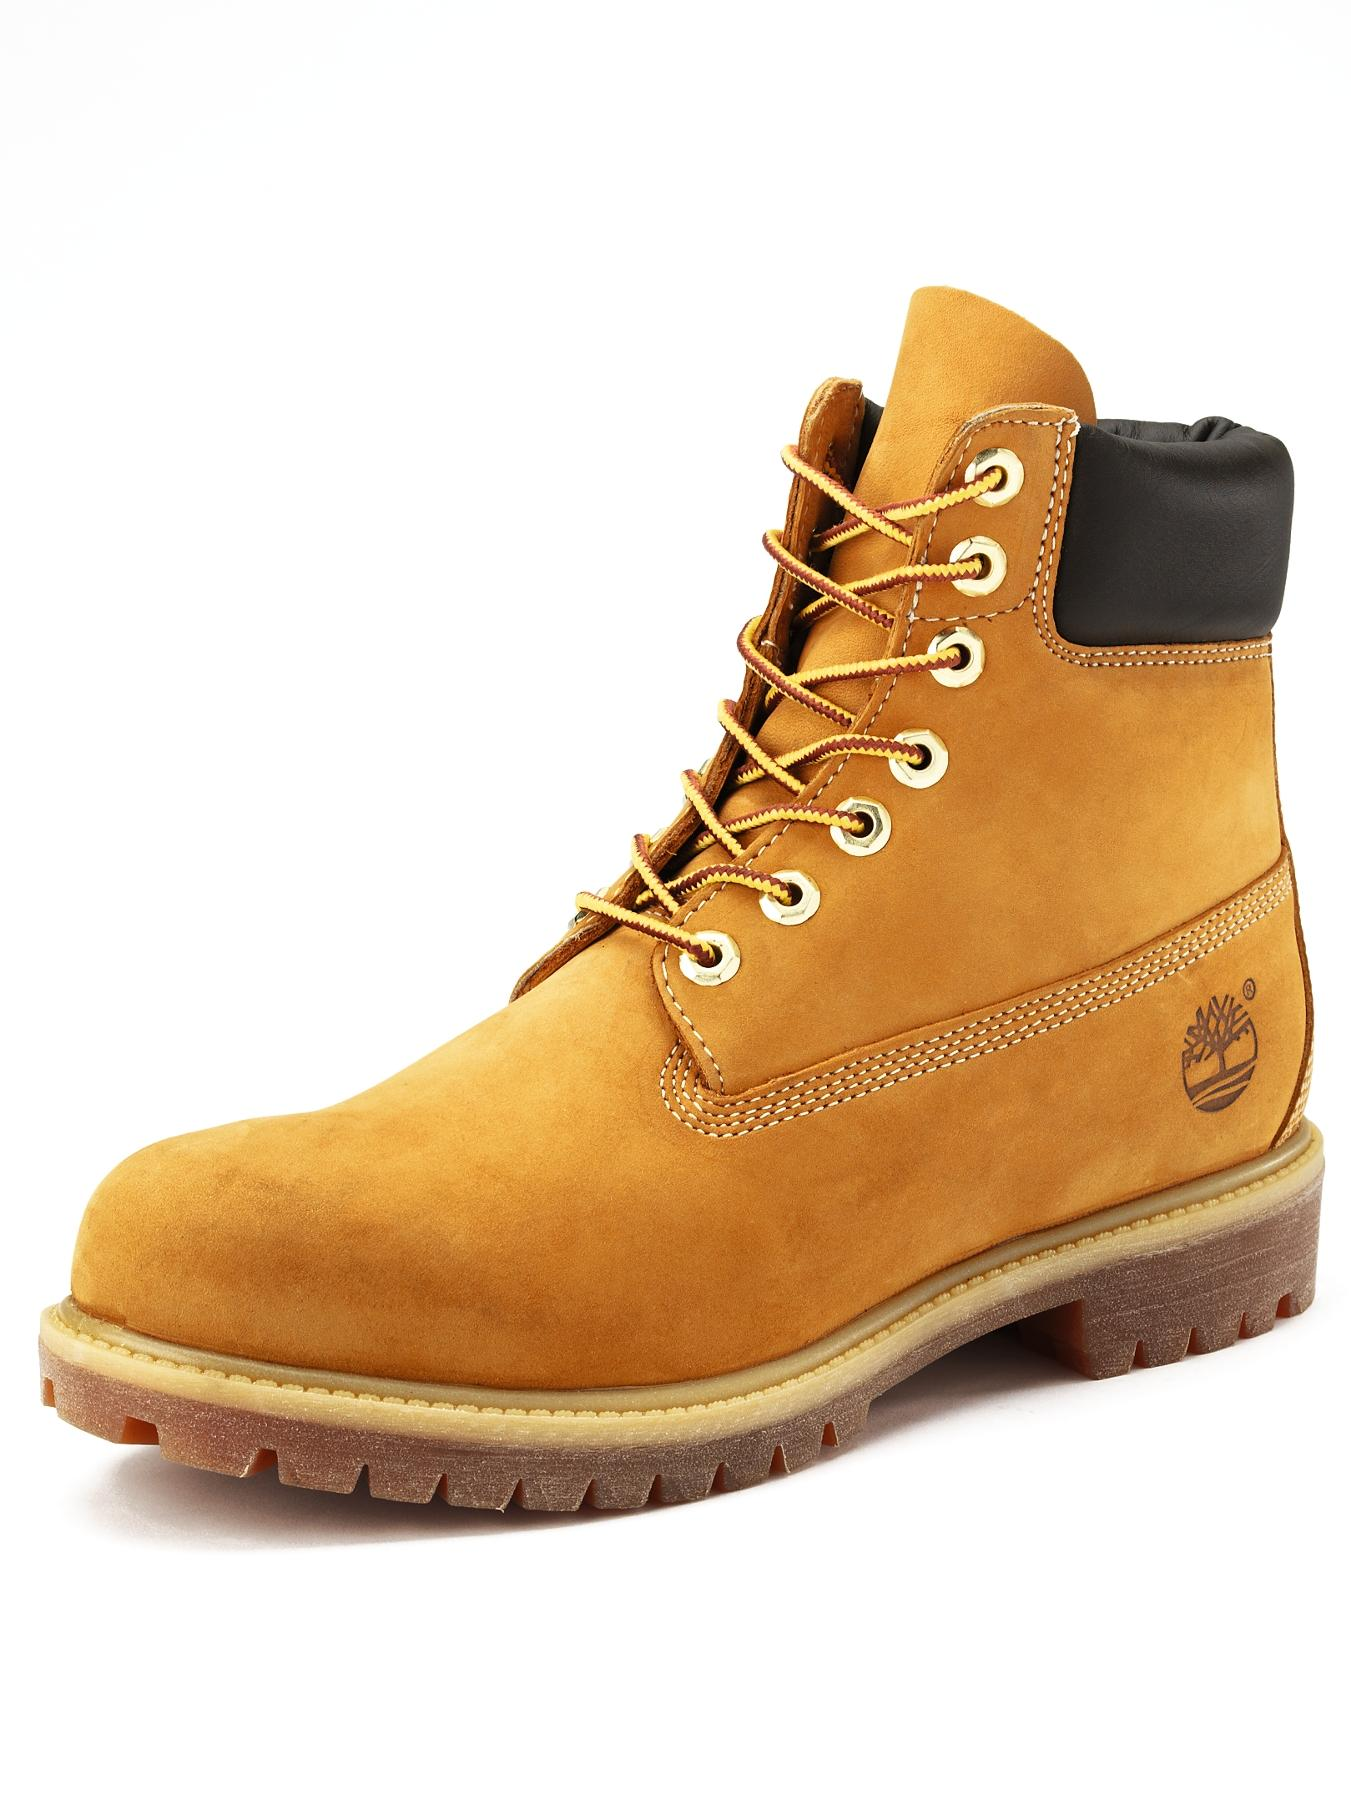 Timberland Mens 6 Inch Premium Leather Boots Verycouk